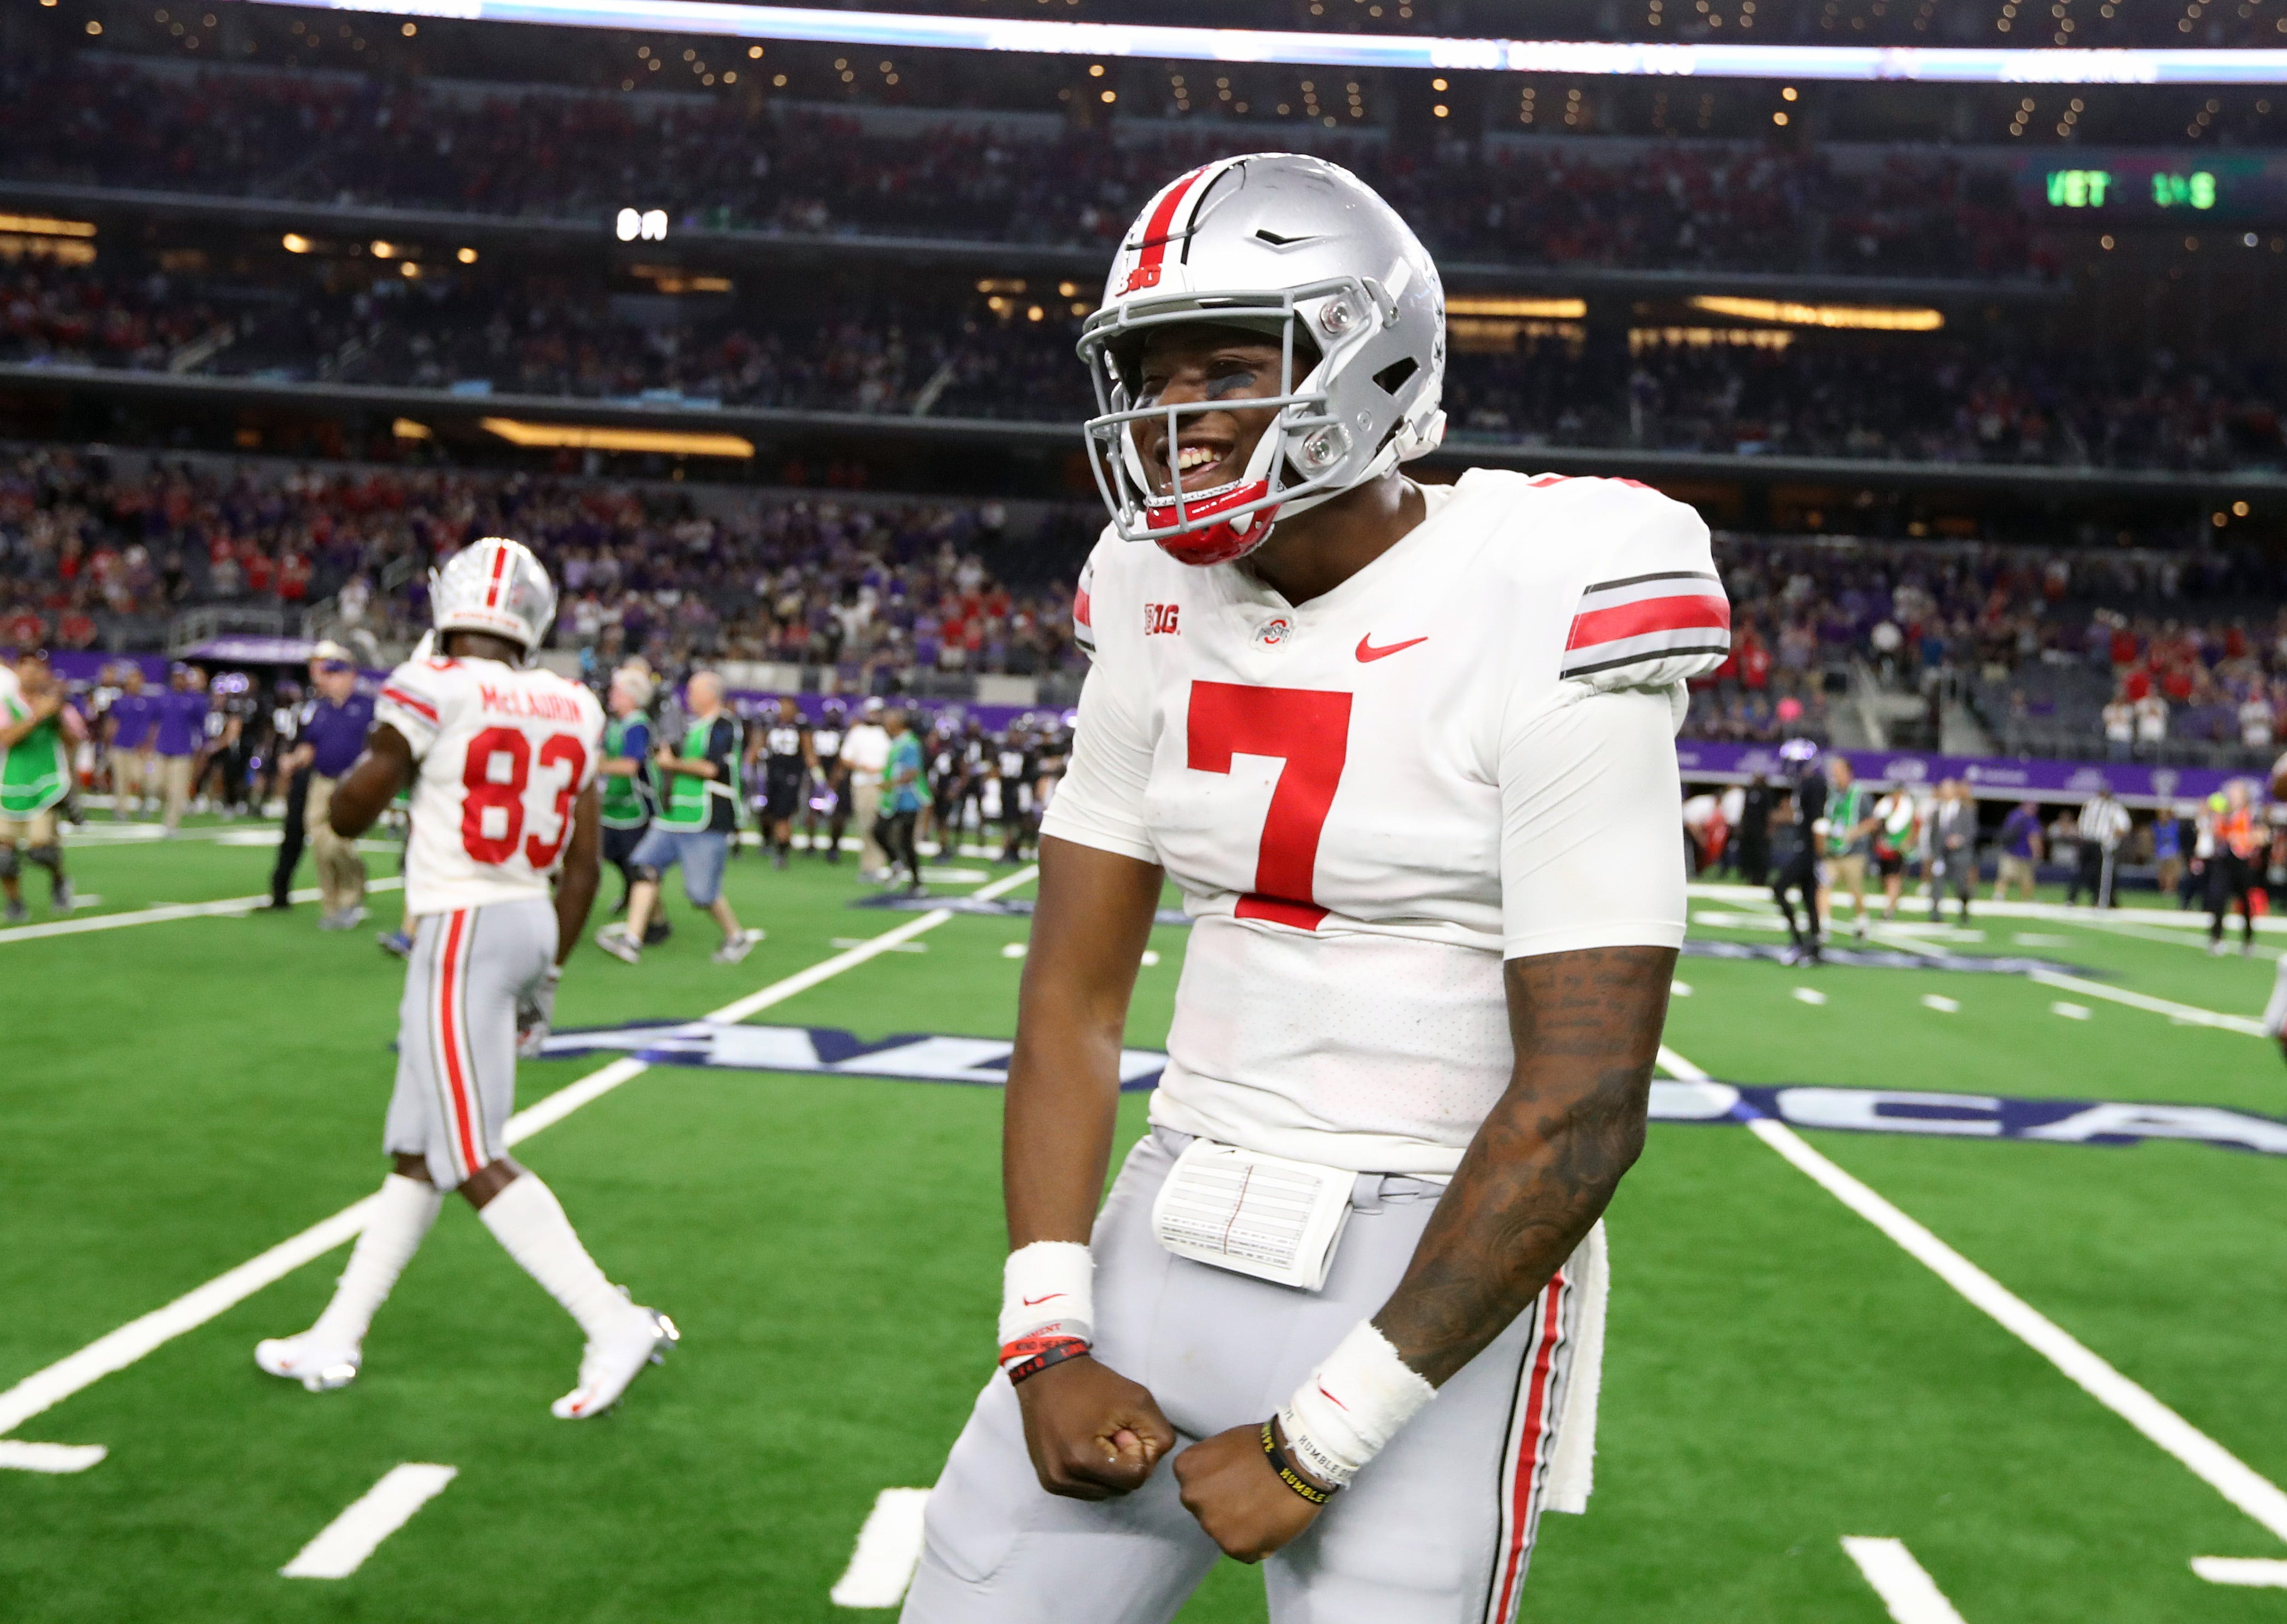 Redskins pick QB Dwayne Haskins in first round of NFL draft amid uncertainty